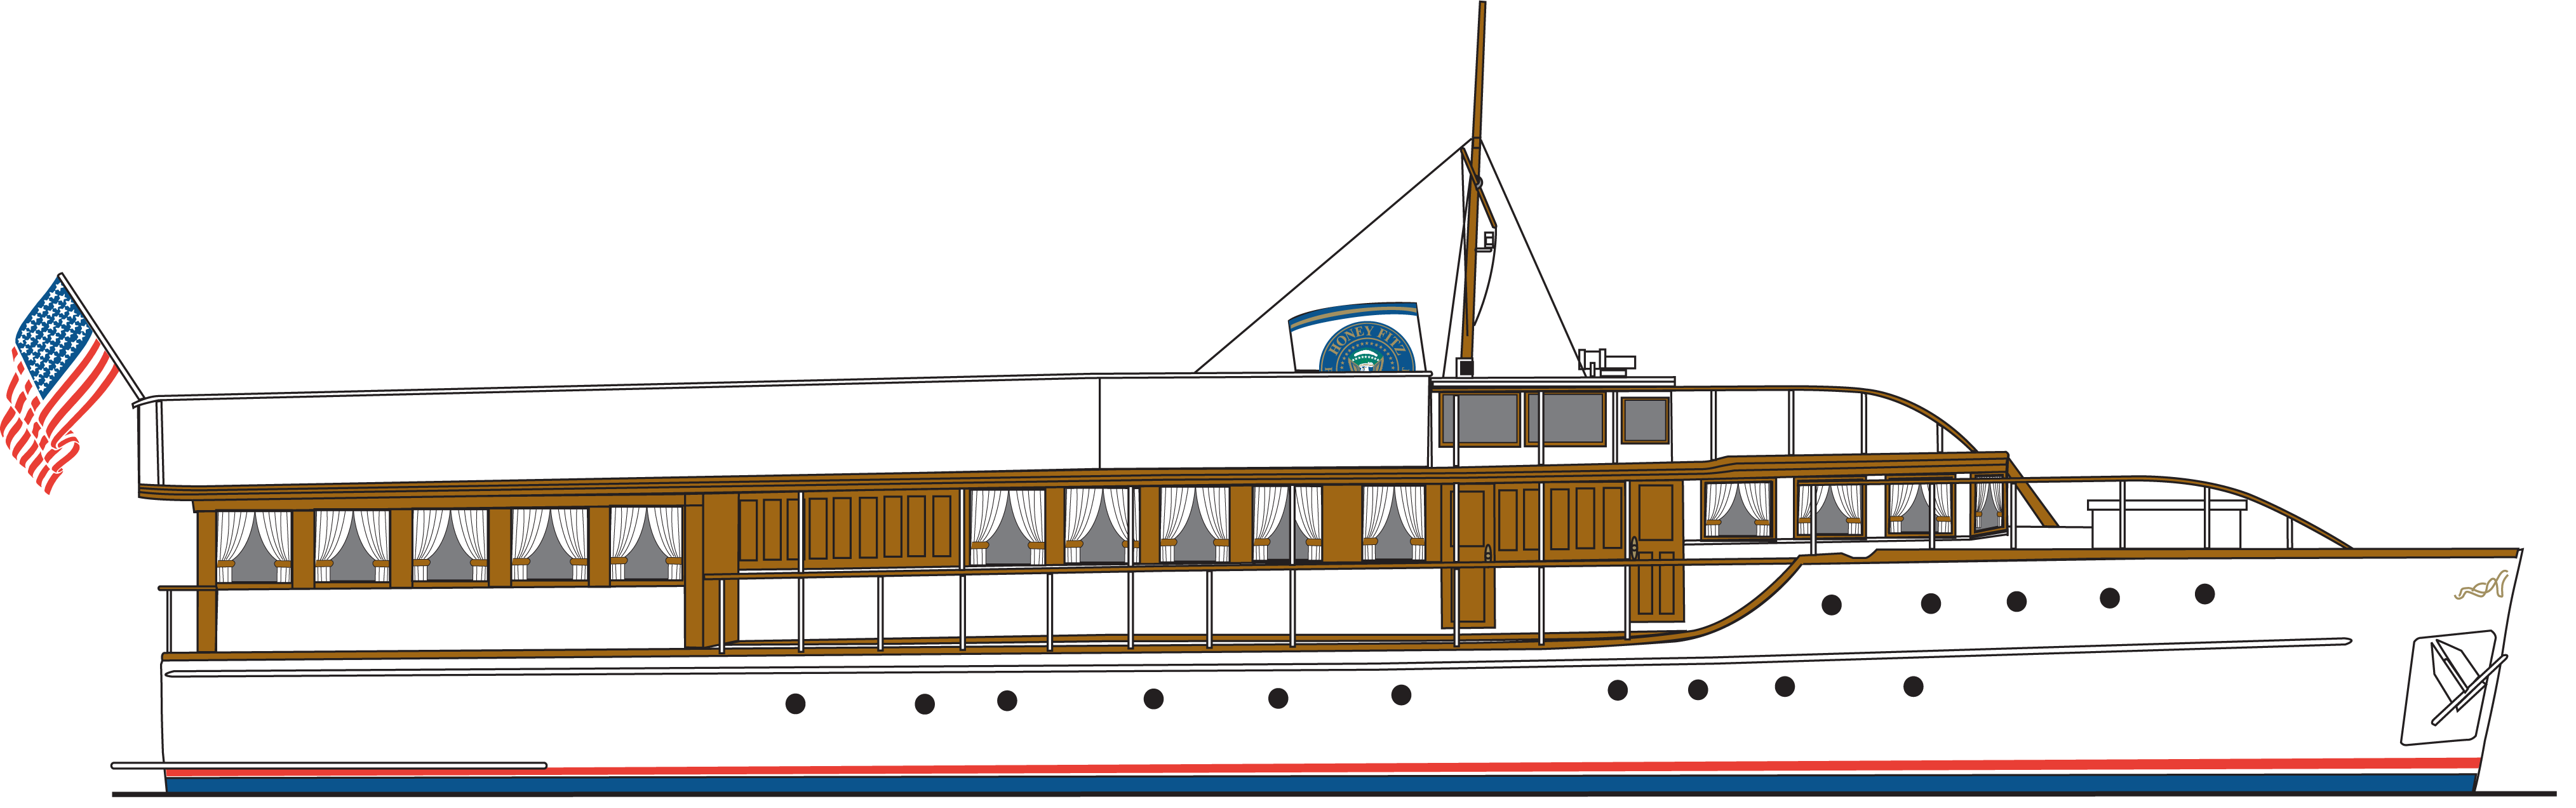 banner library library Honeyfitz presidential clipground keeping. Yacht clipart ship